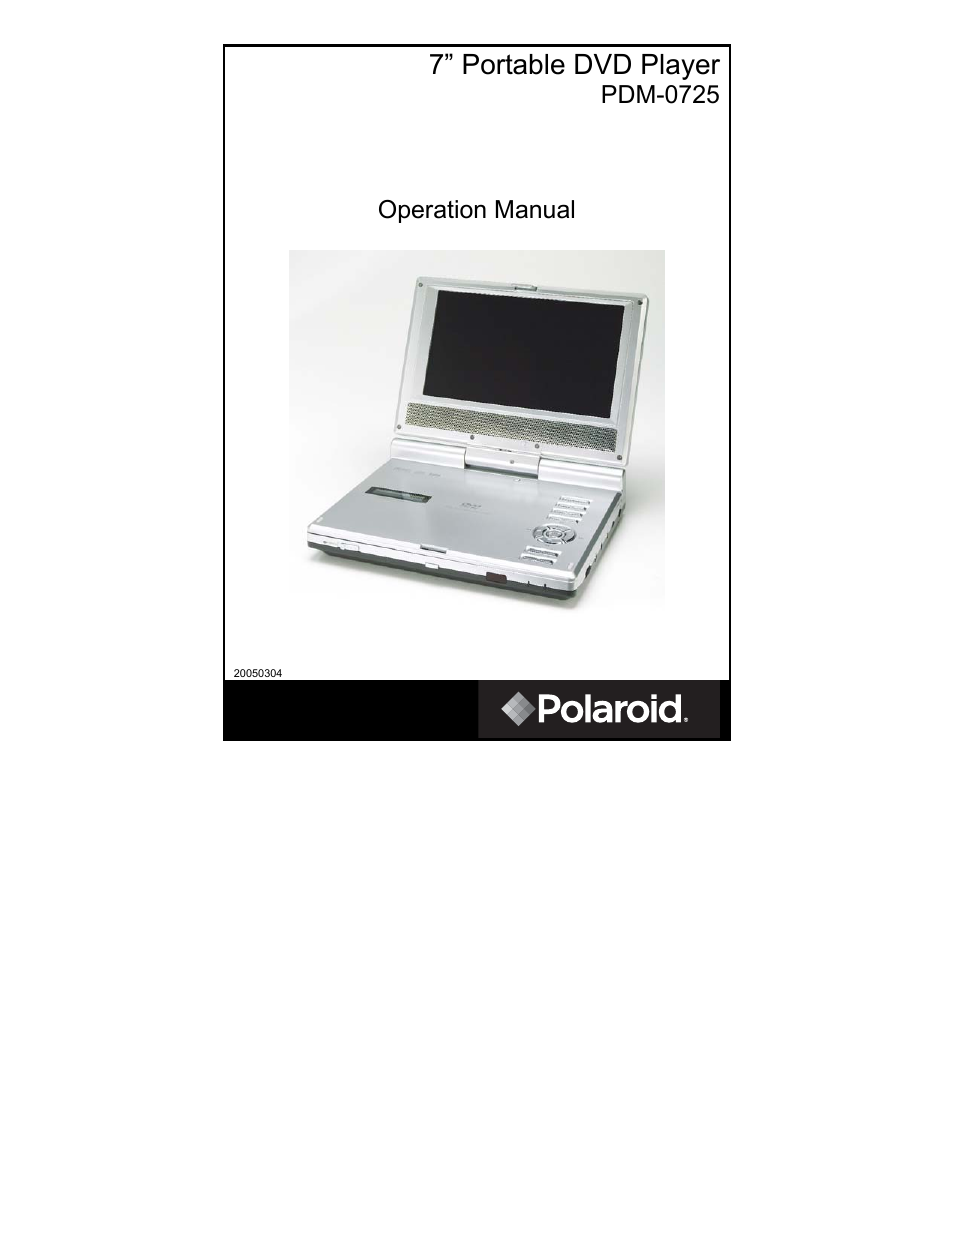 polaroid pdm 0725 user manual 43 pages rh manualsdir com Walmart Dual Portable DVD Player CNET Top DVD Player Portable